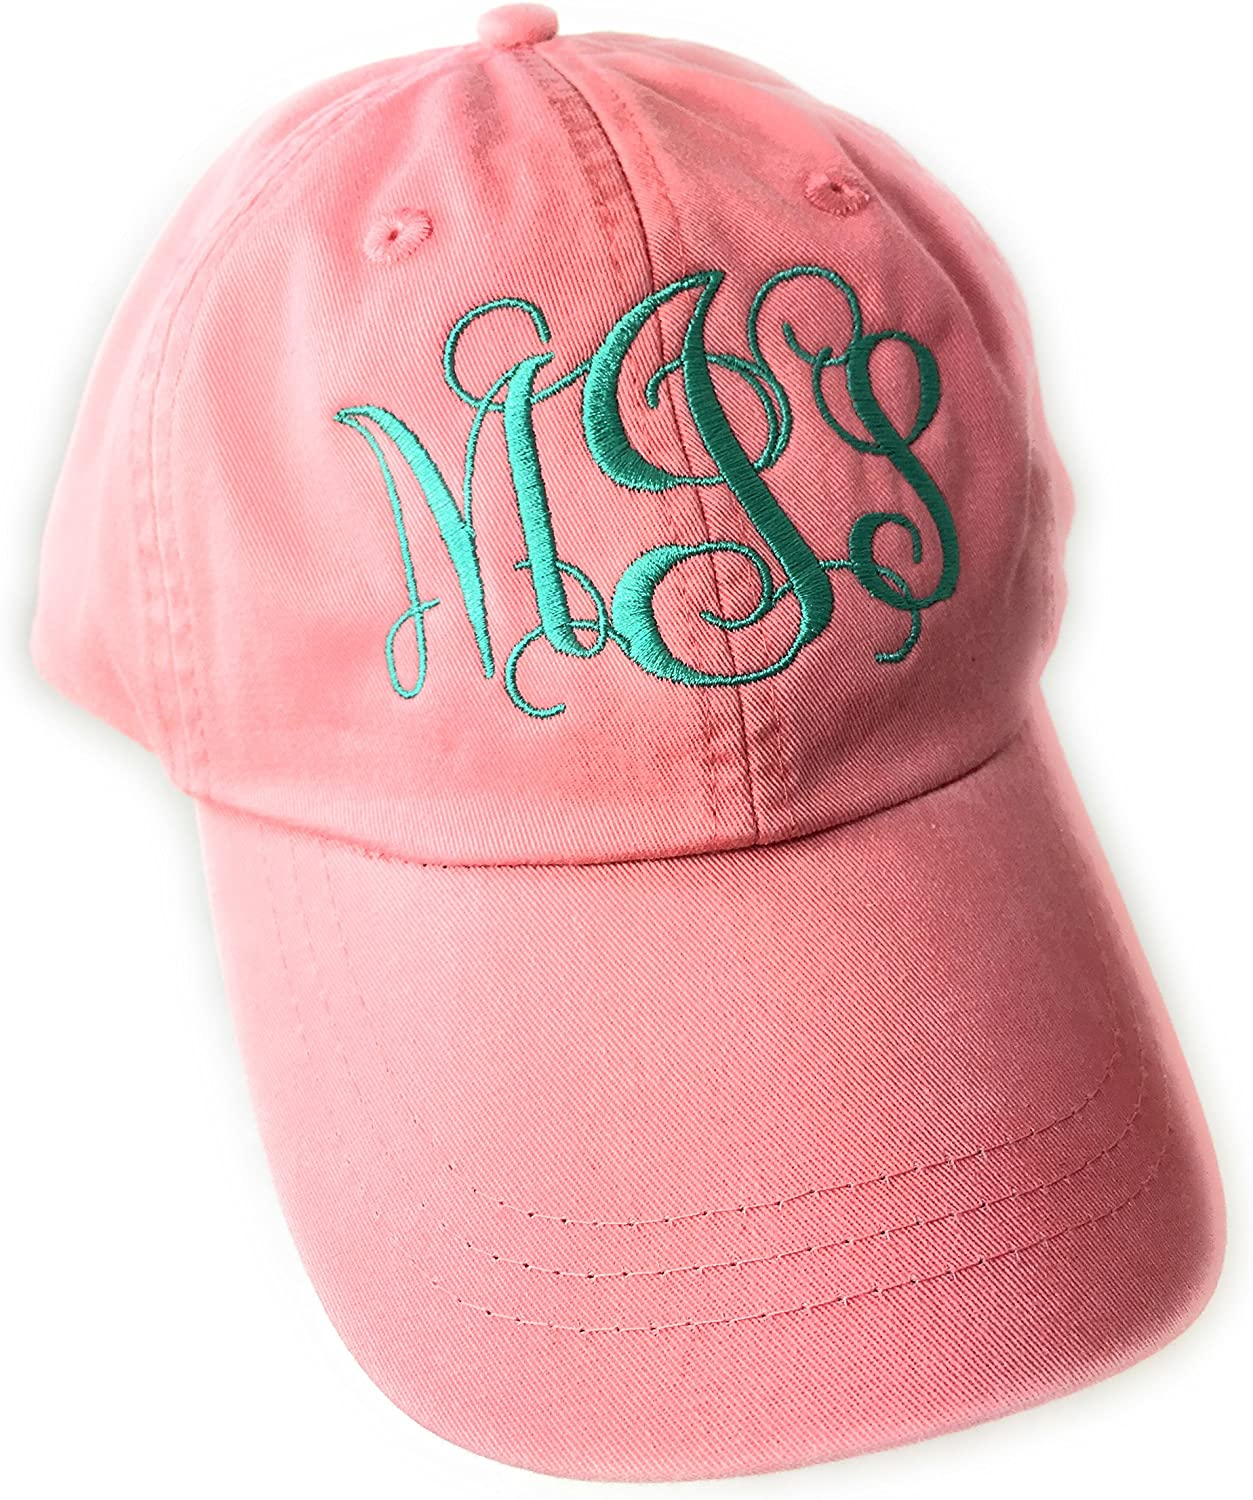 Mary's Monograms Monogrammed/Personalized Woman's Coral Baseball Cap